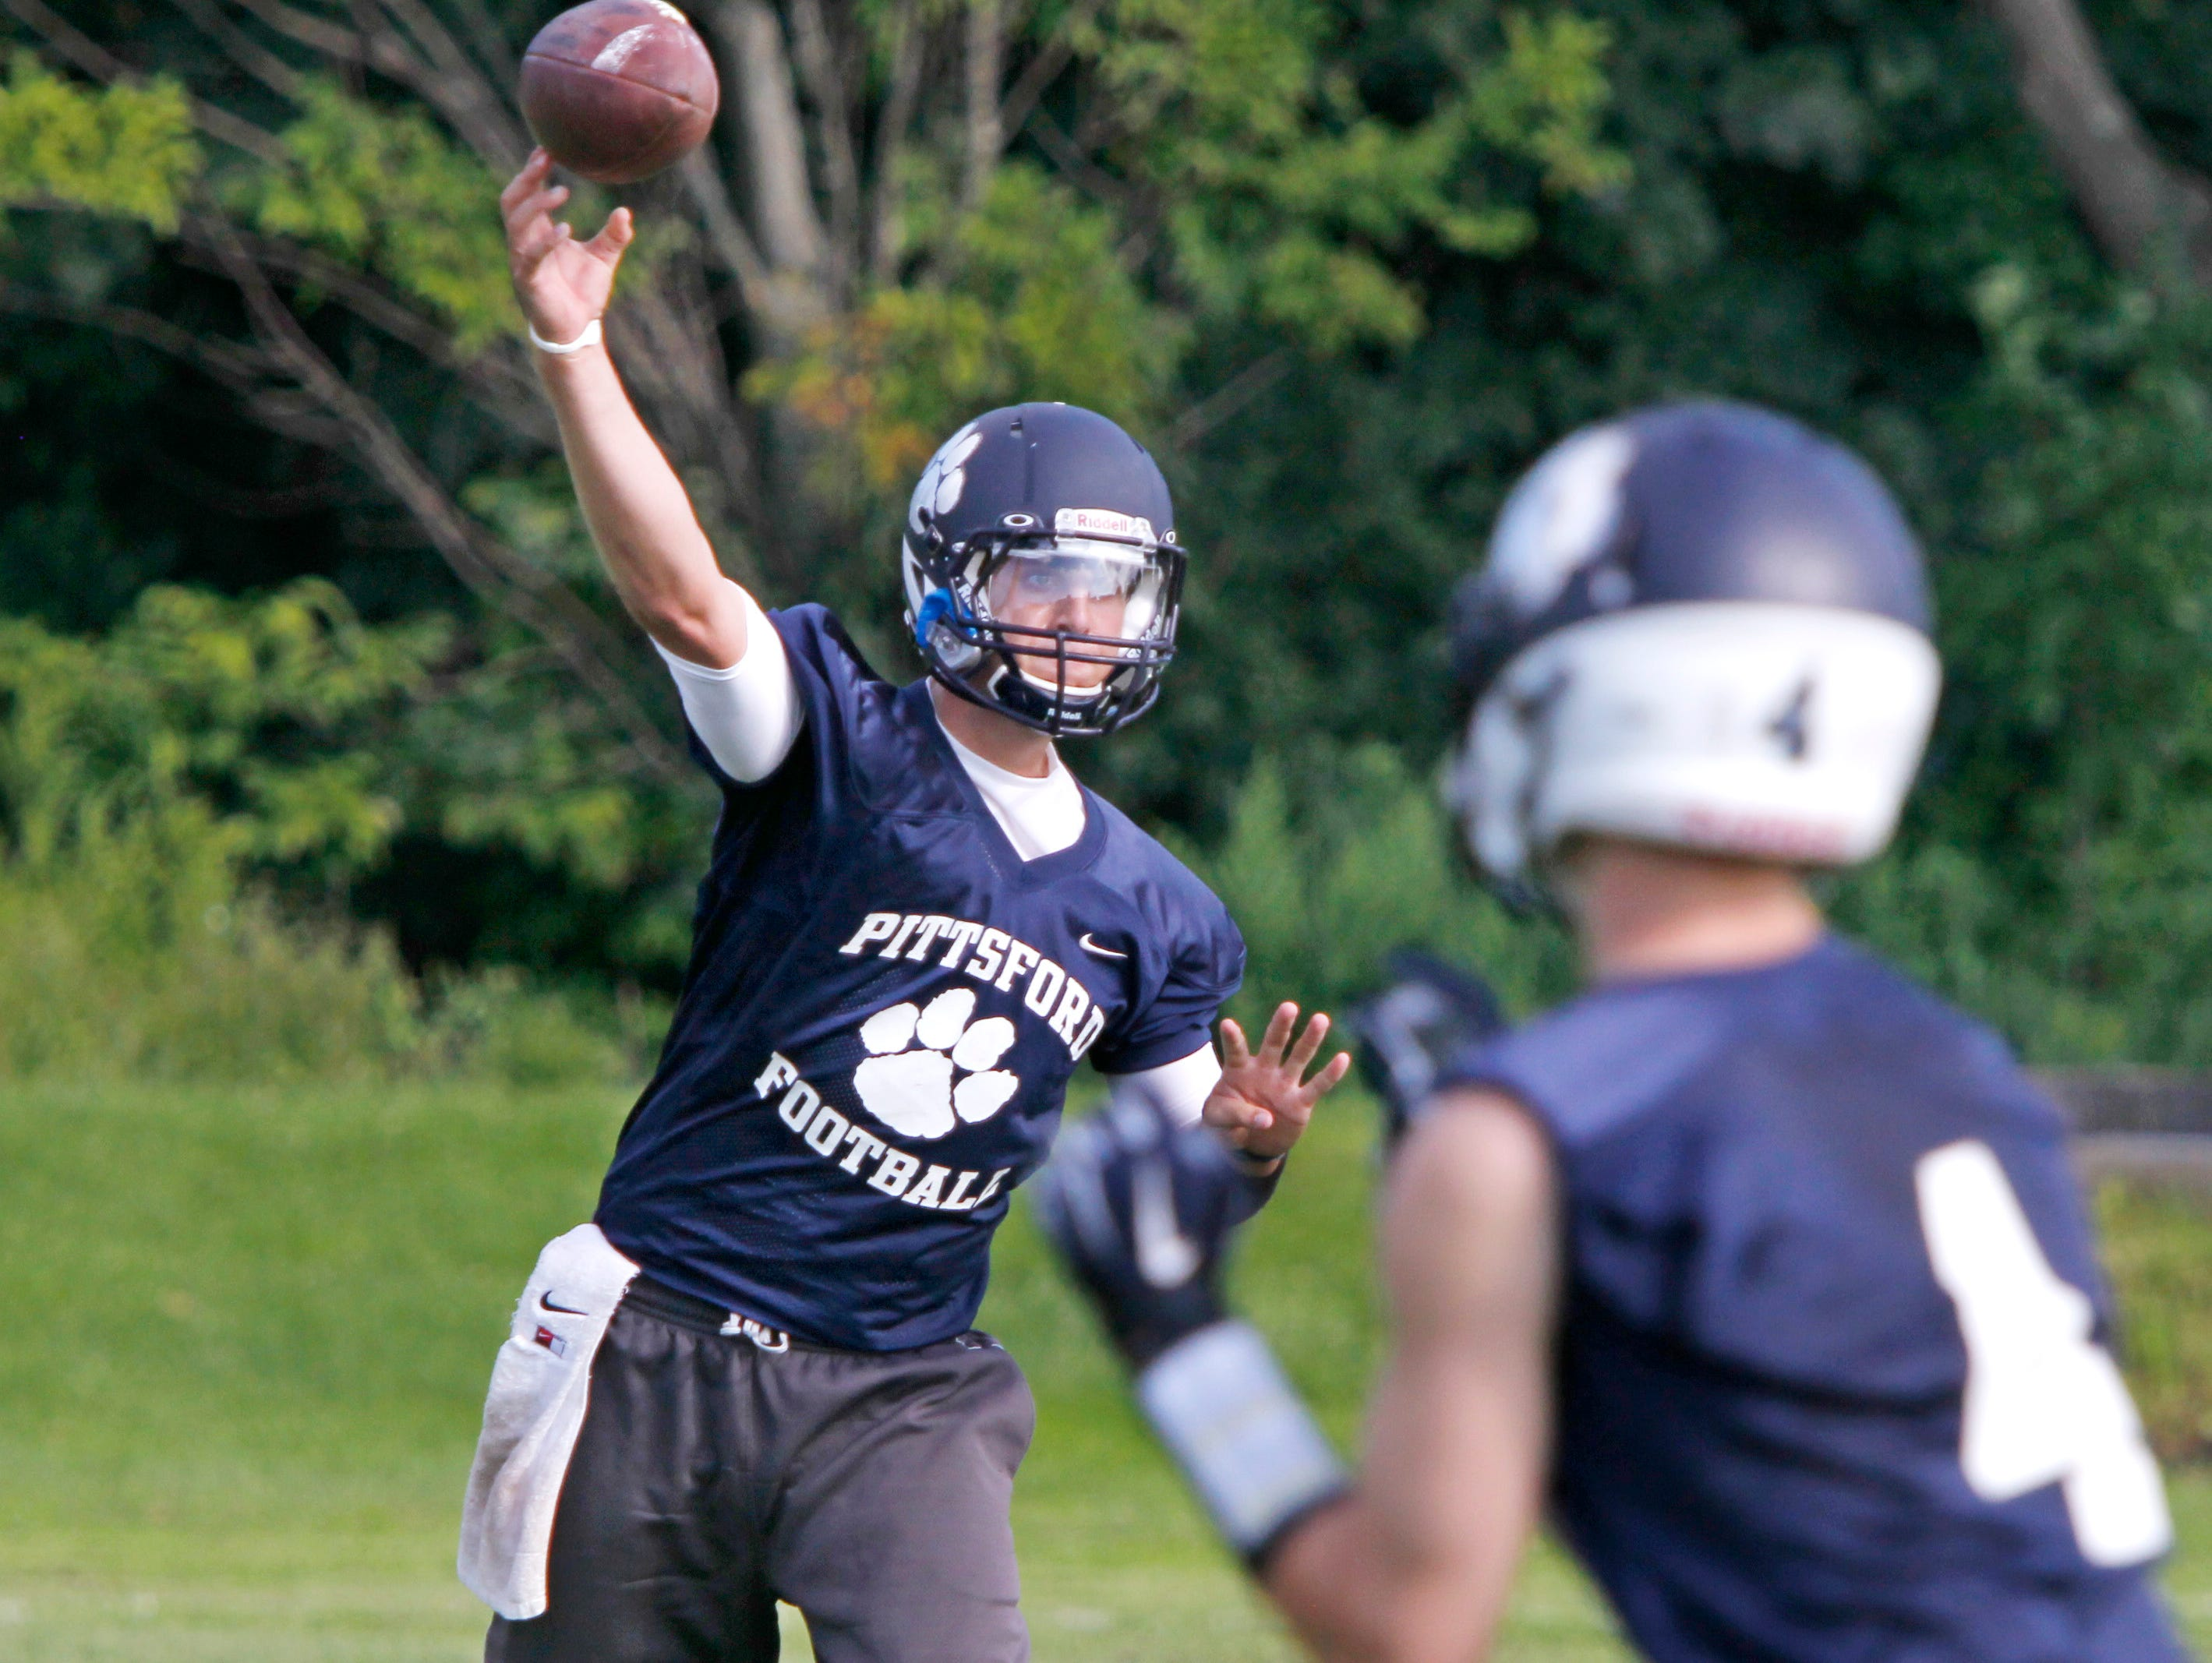 Pittsford quarterback Jack Wallman passes during offensive drills during practice on Tuesday.